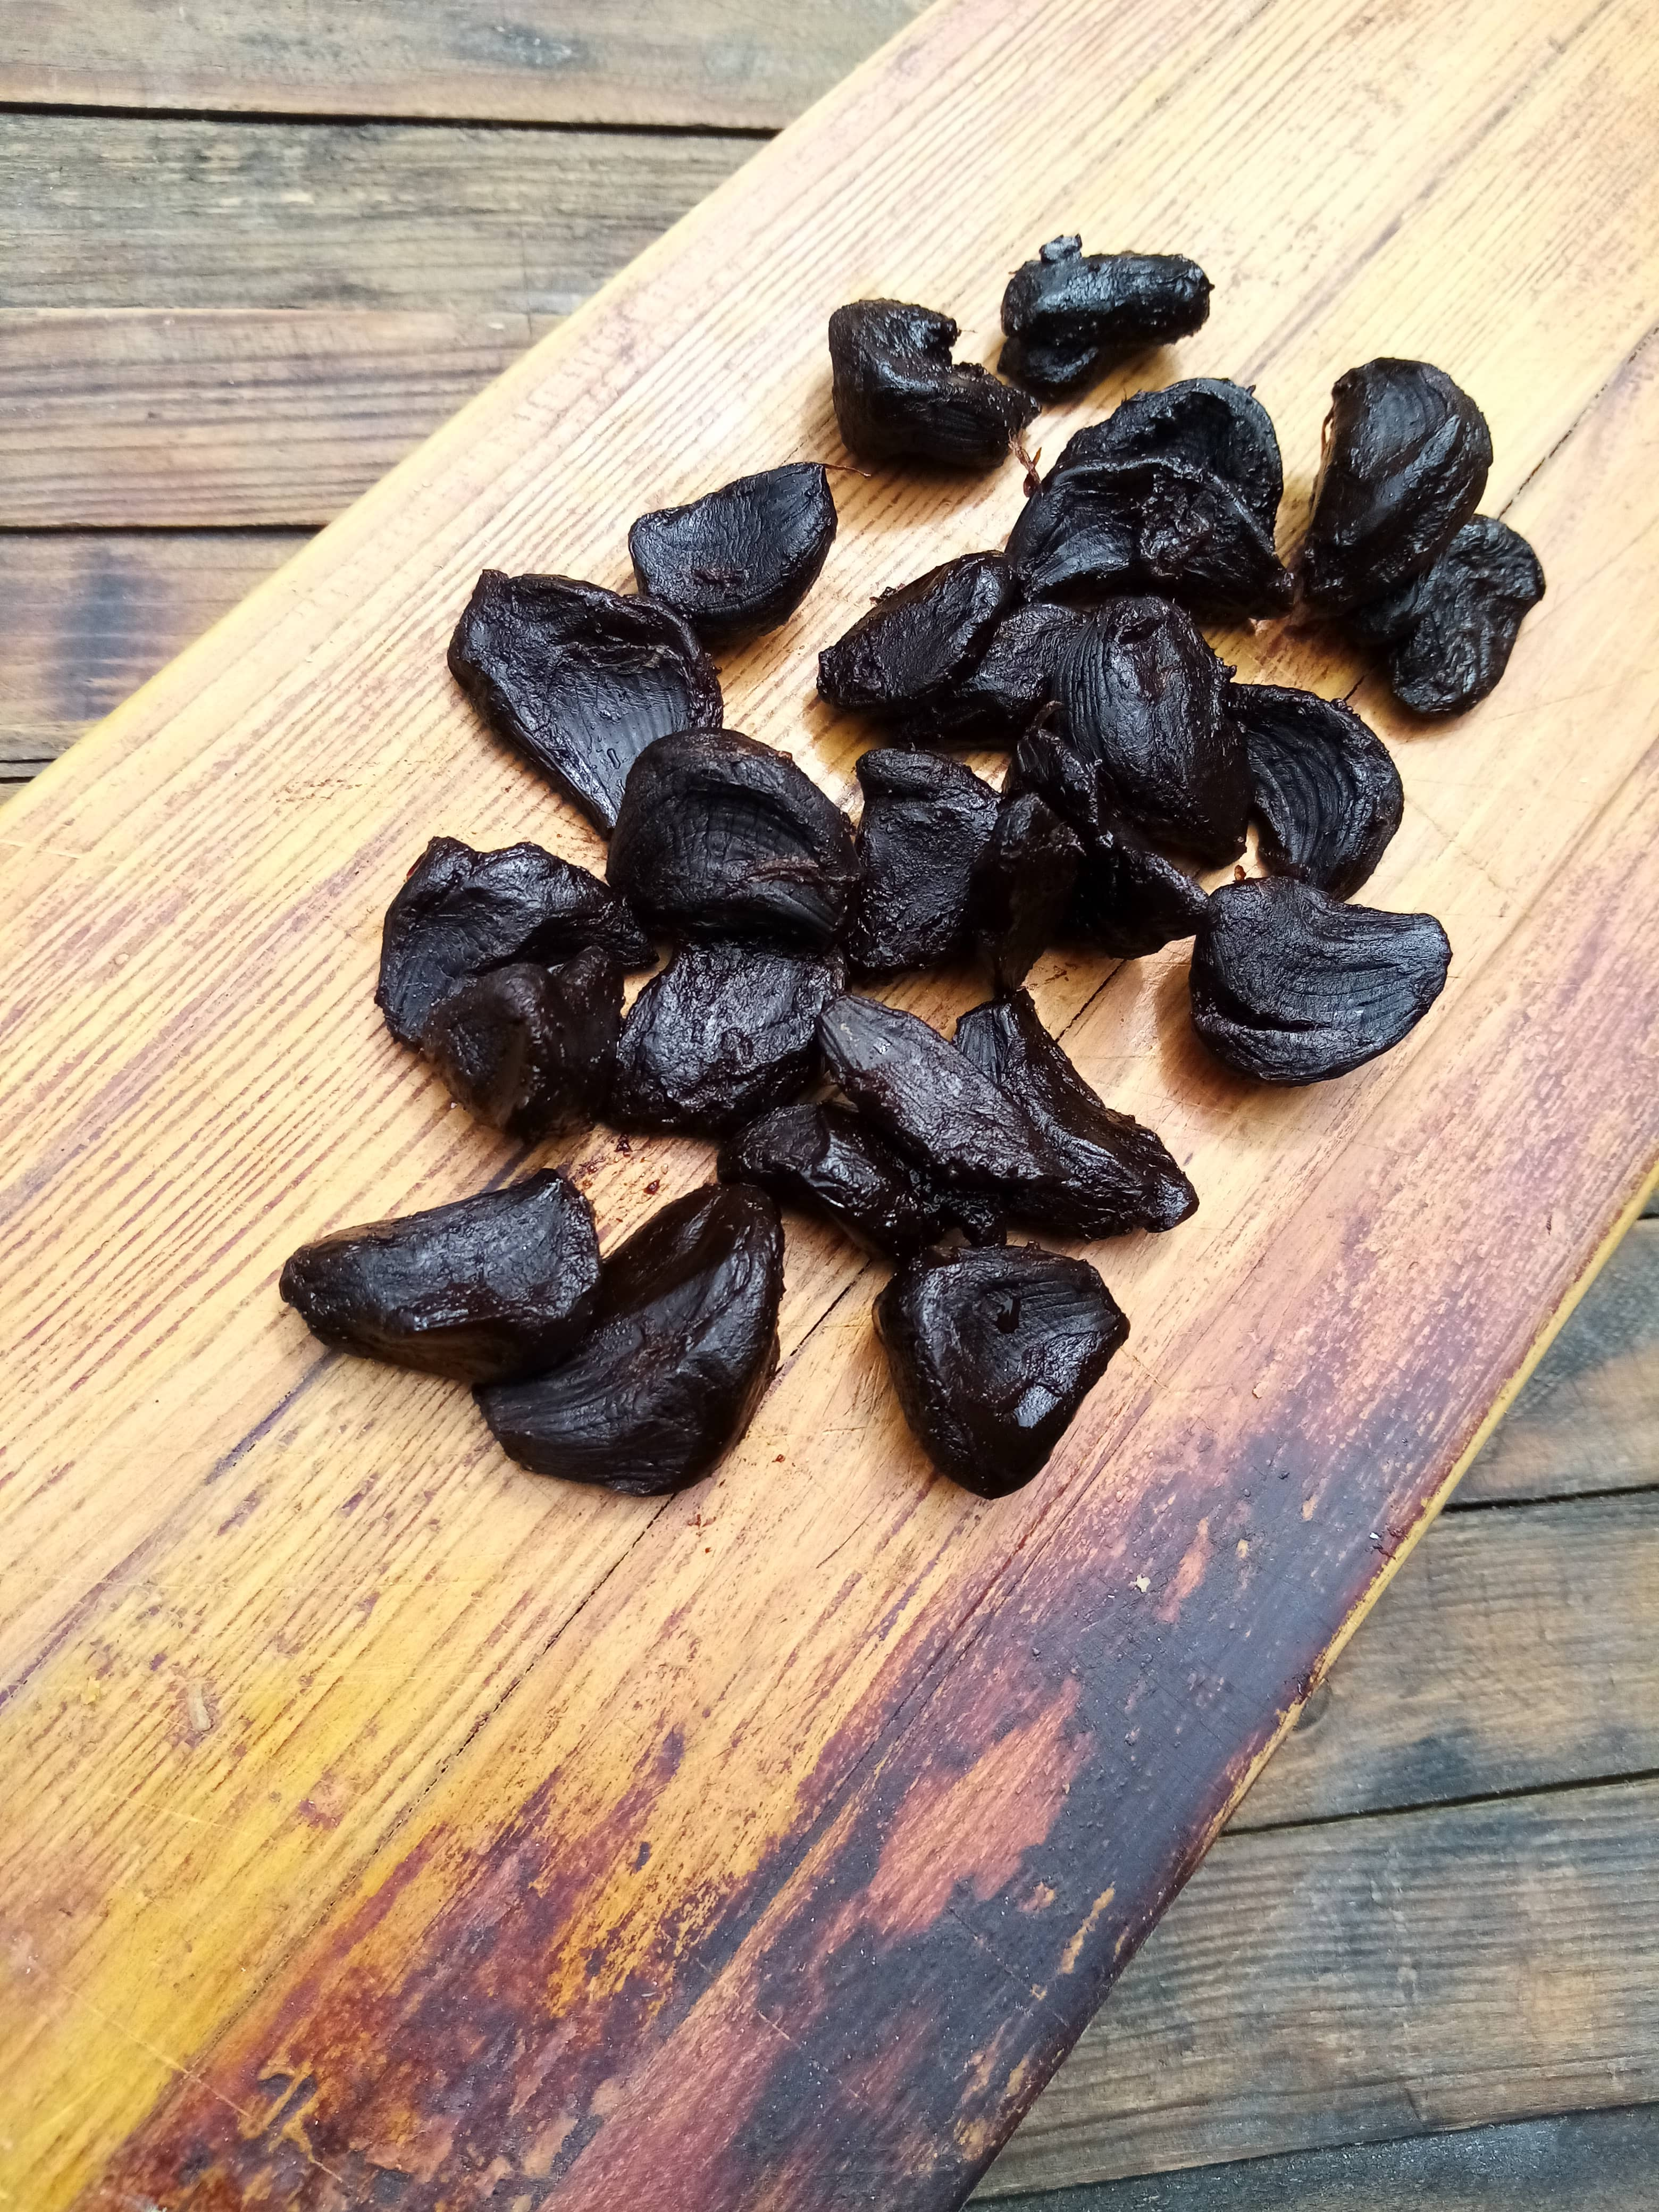 Peeled black garlic cloves